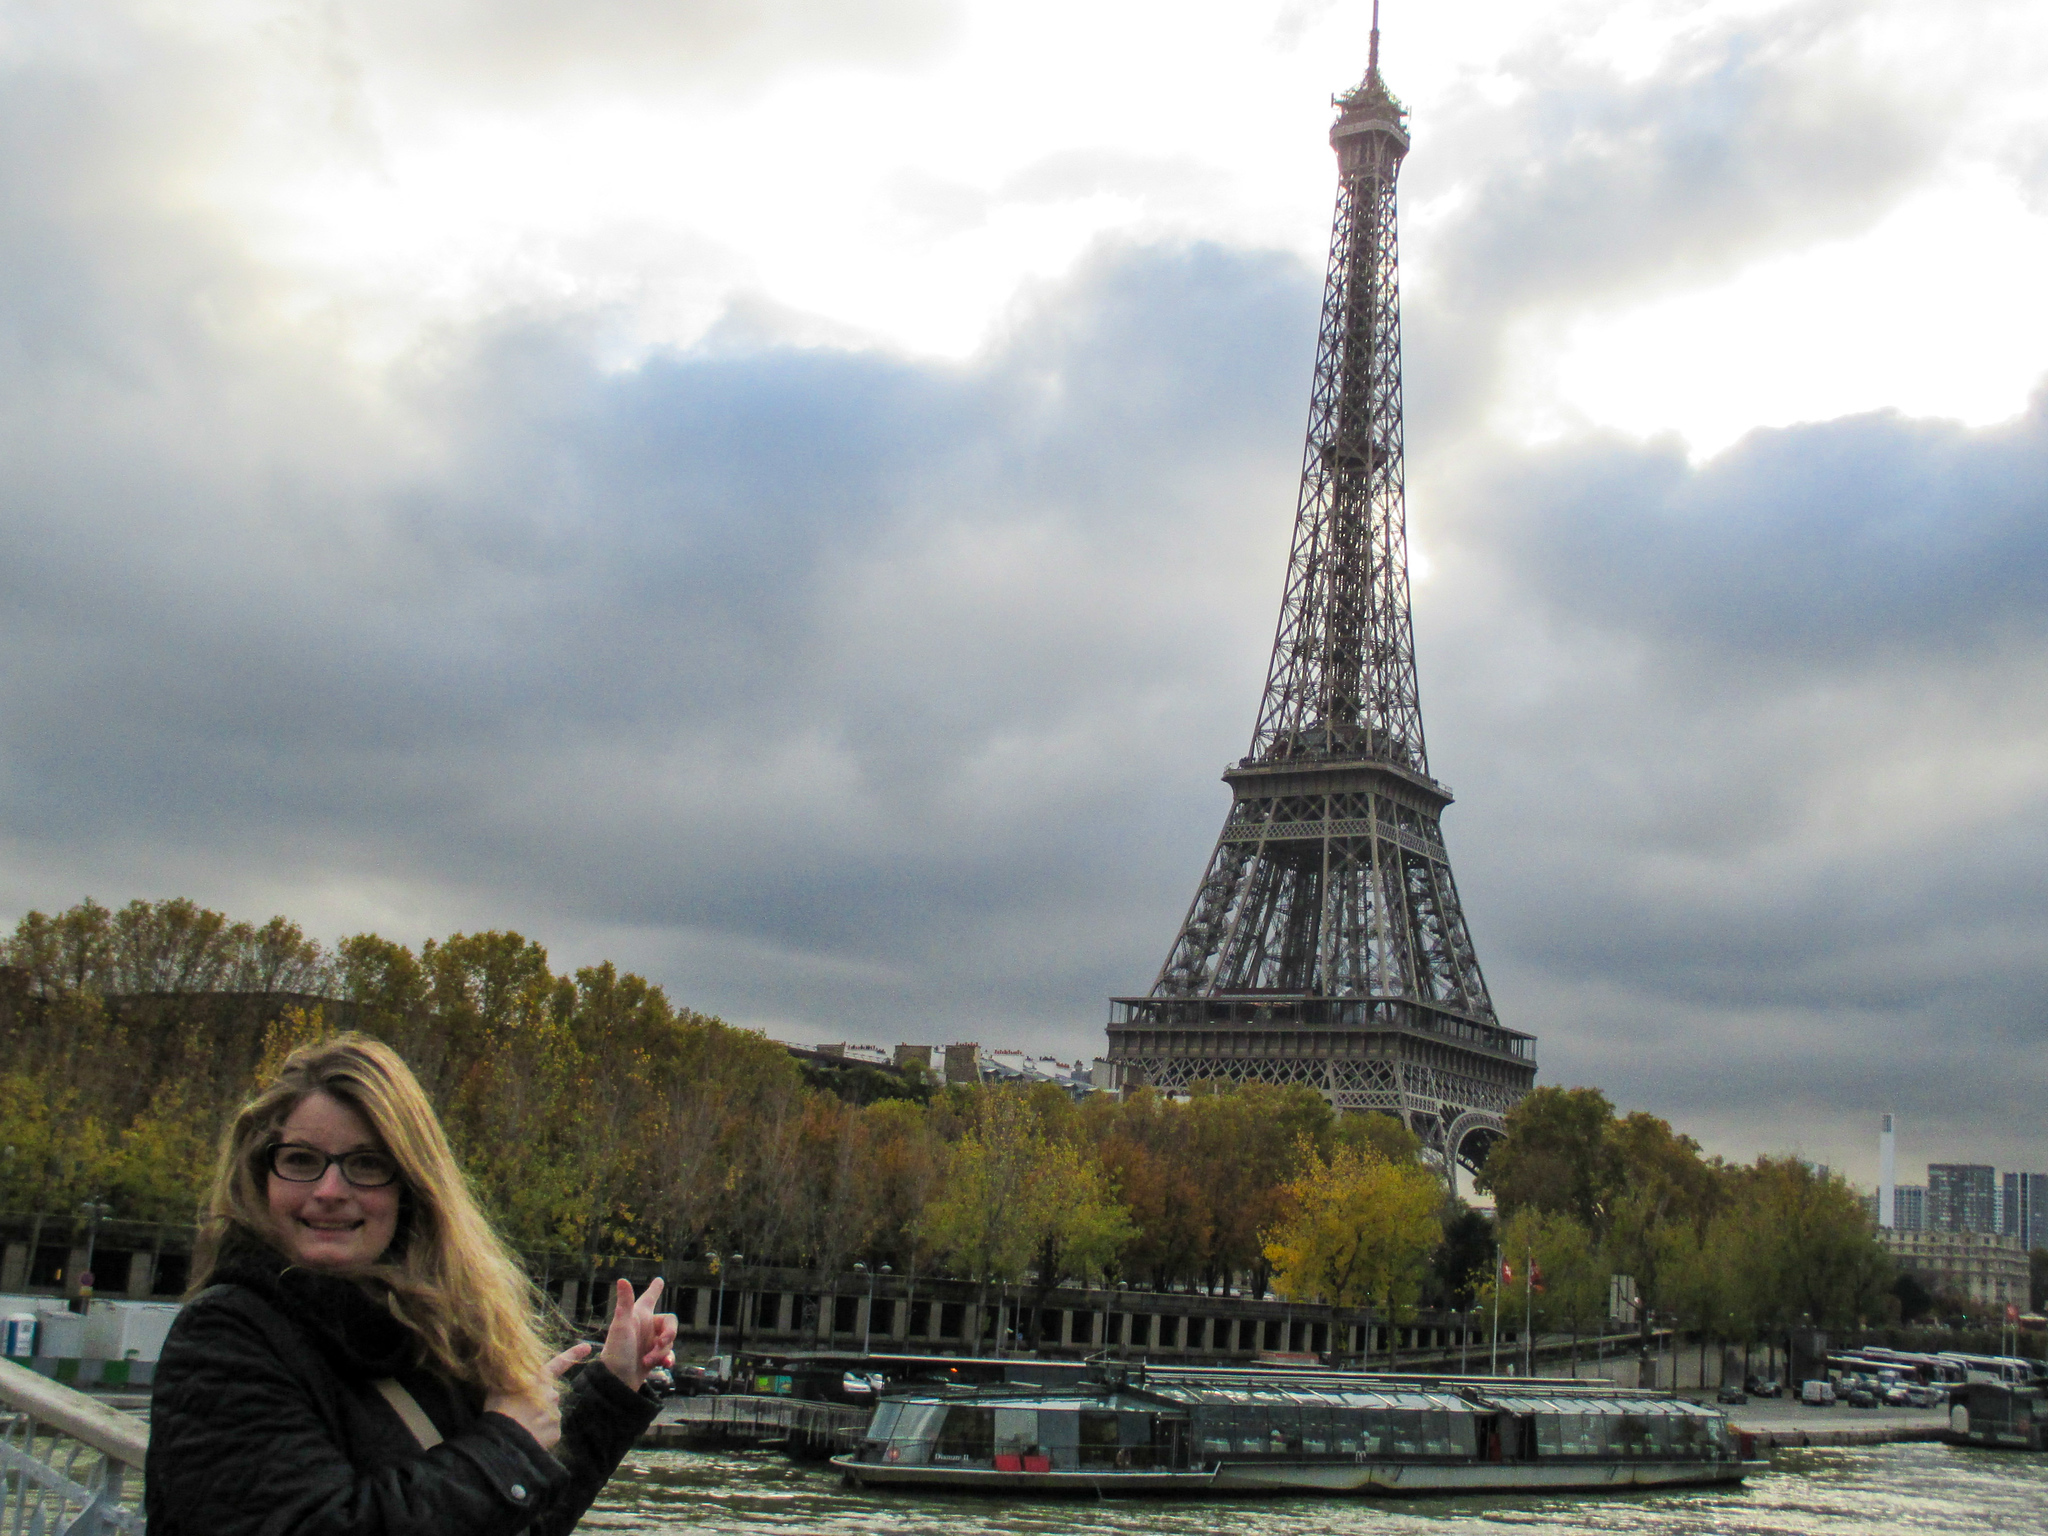 traveling to paris for the first time gave me lots of memories